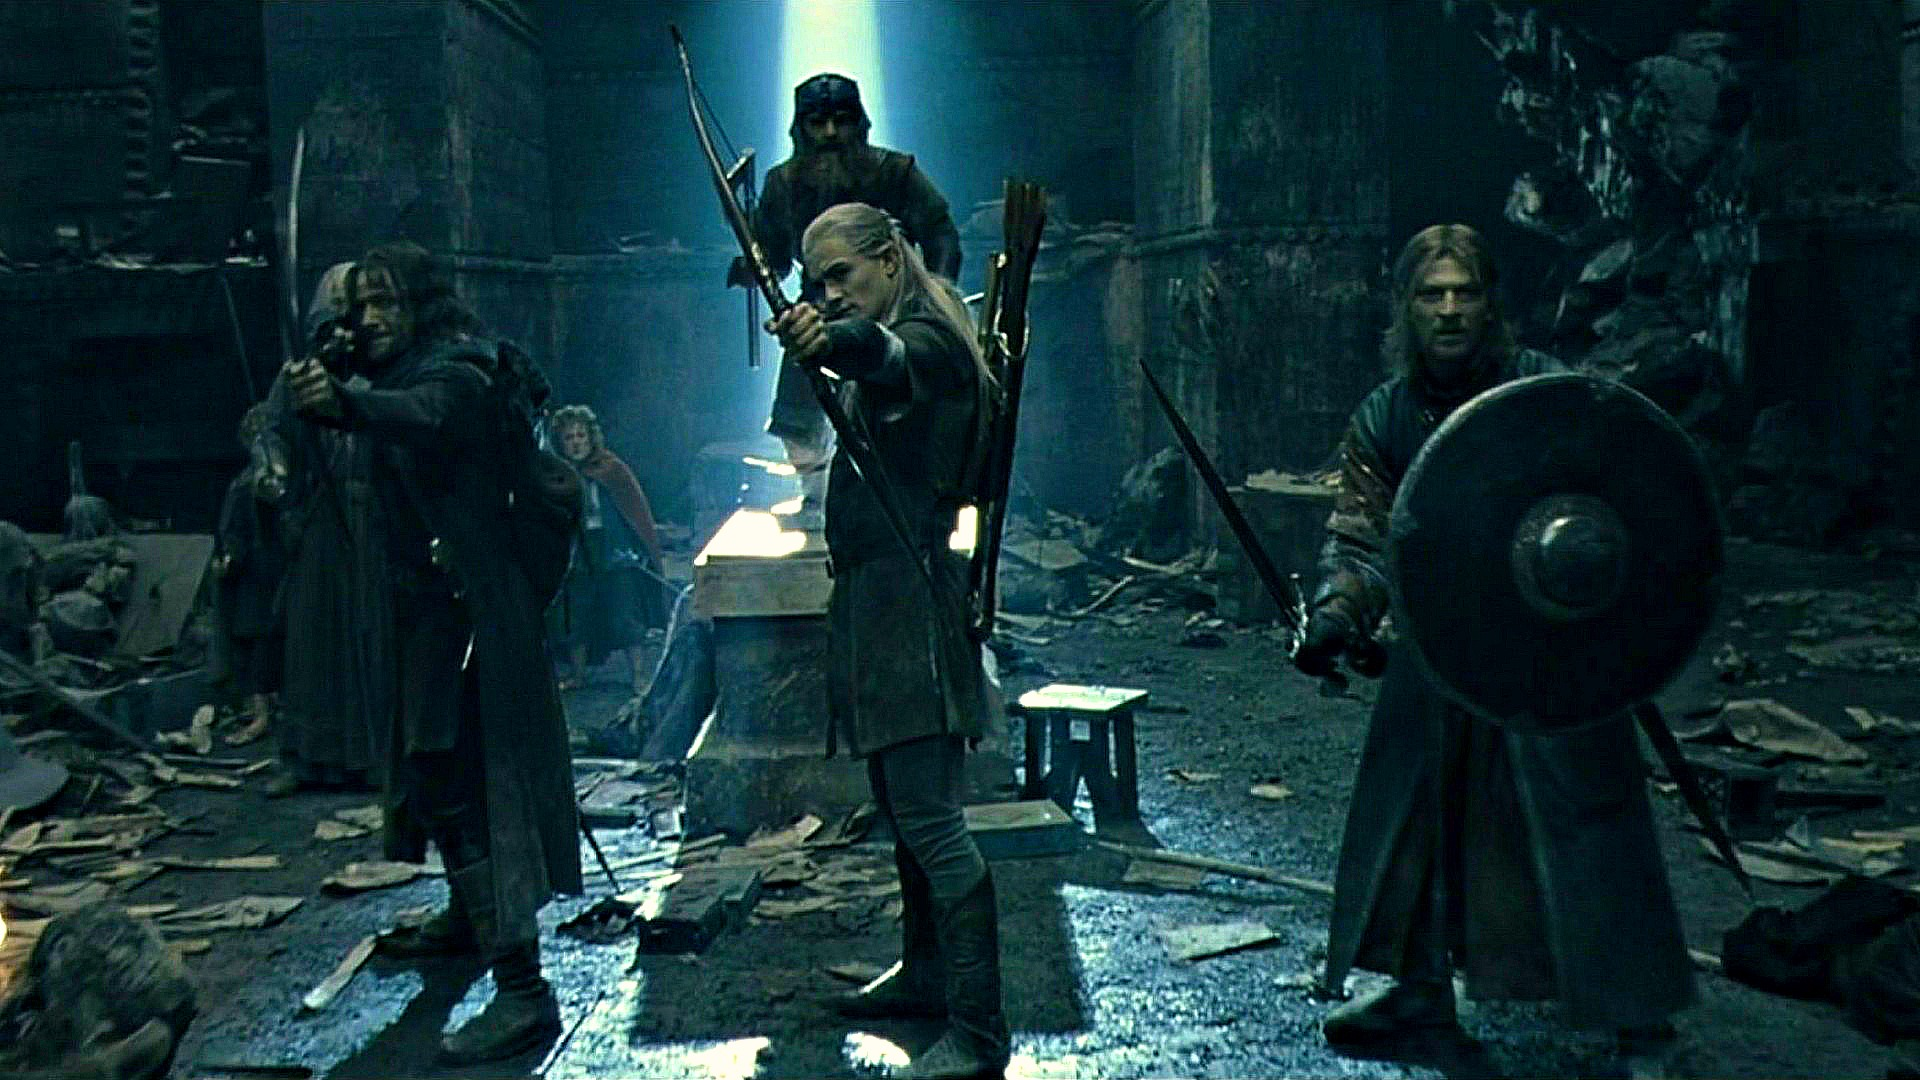 The Lord Of The Rings gang.